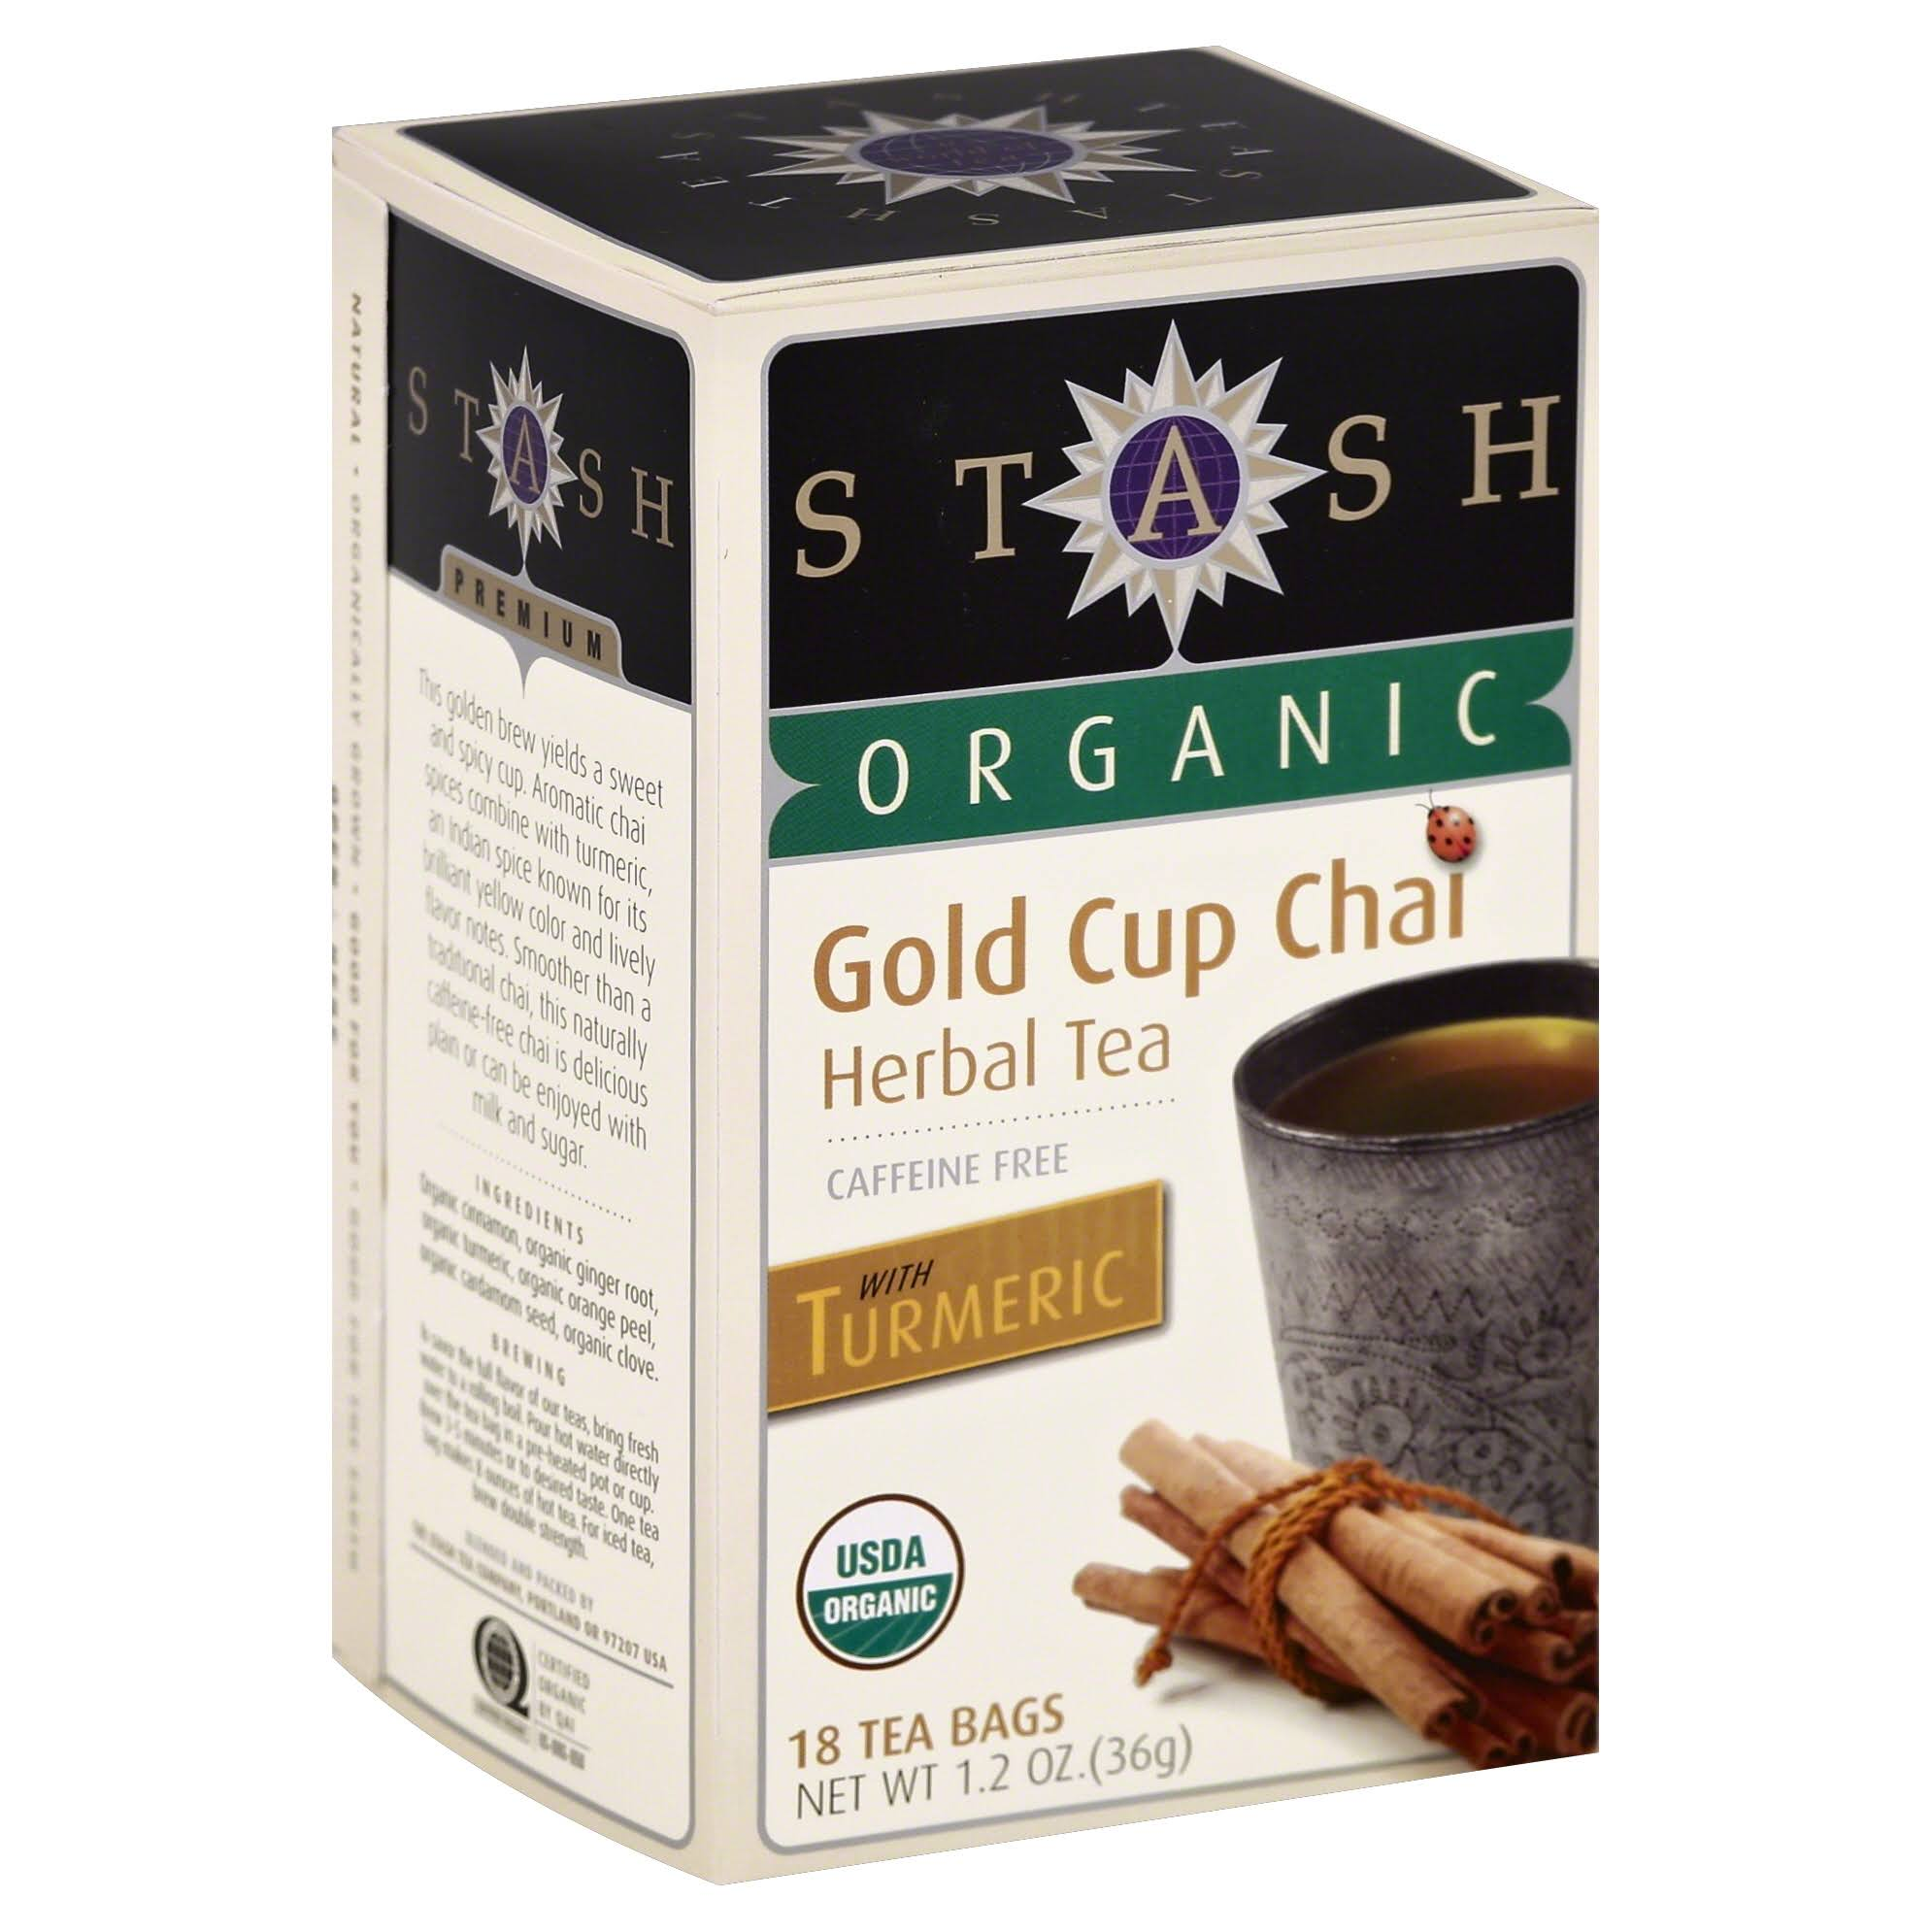 Stash Organic Gold Cup Chai Herbal Tea Bags - 1.2oz, x18